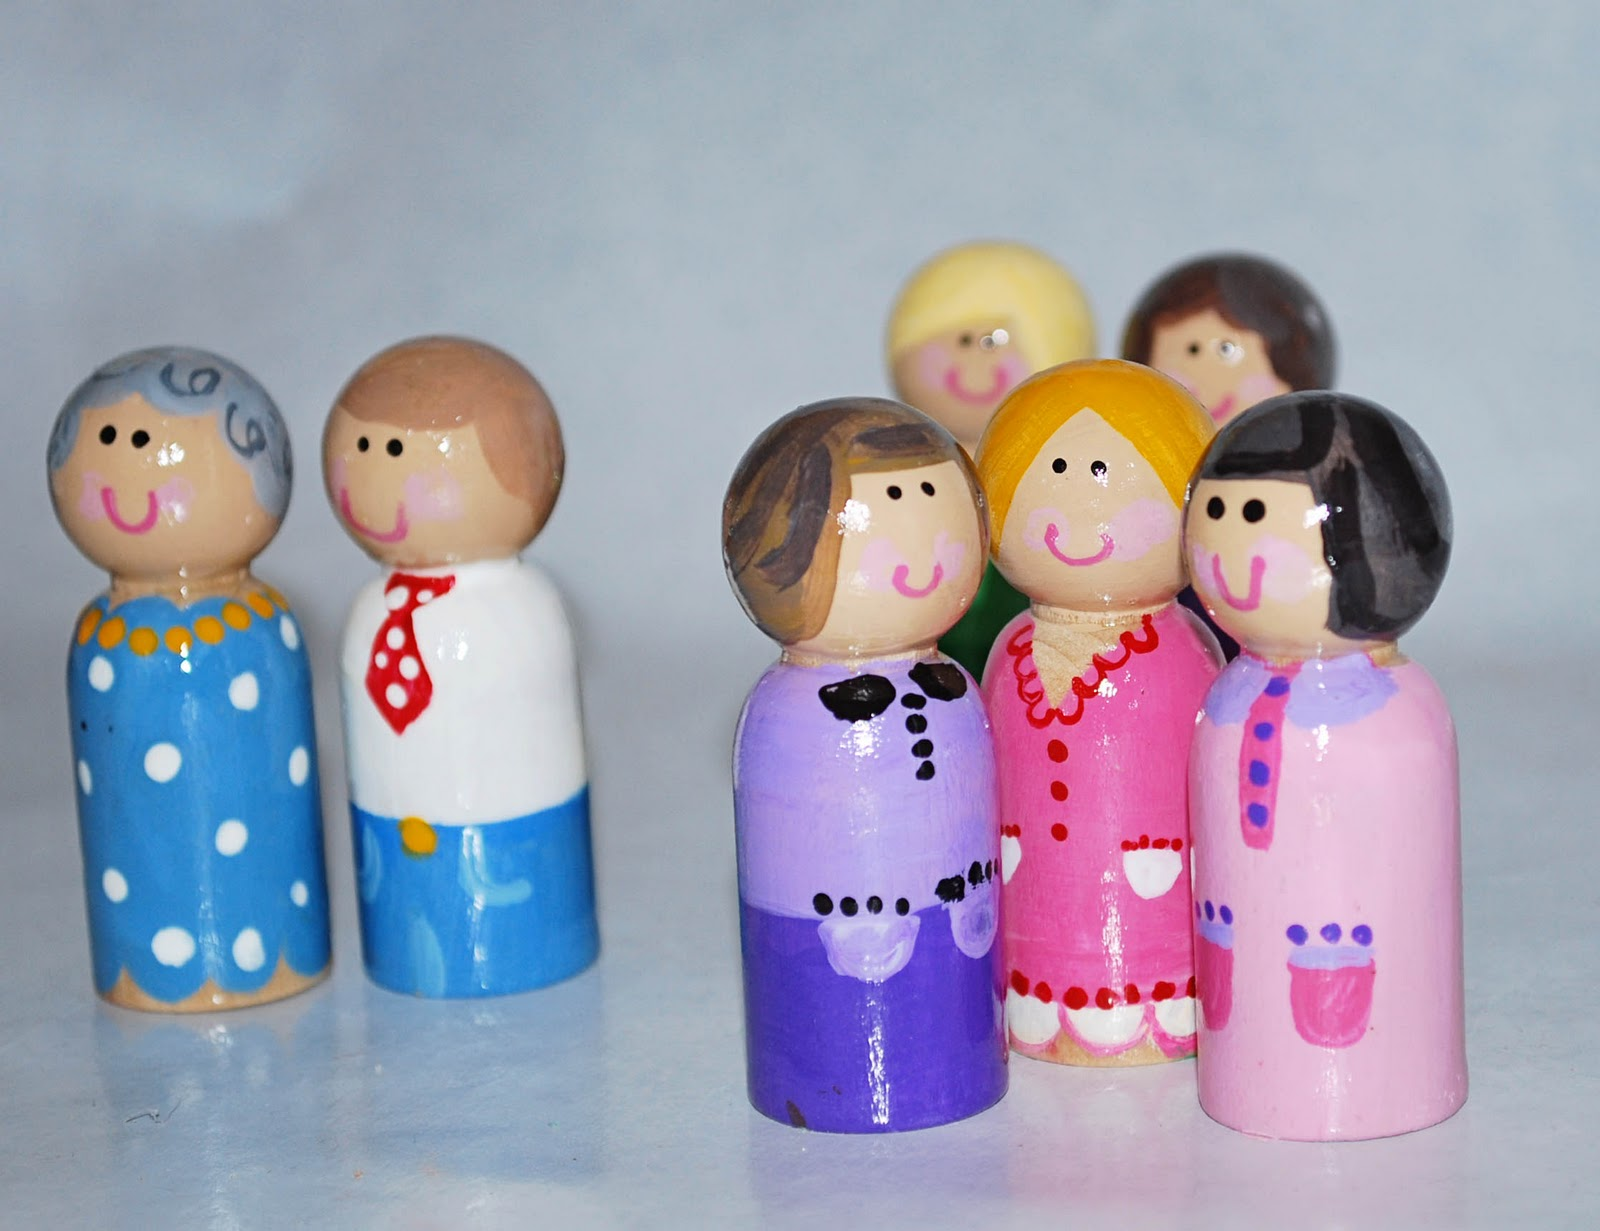 Handmade Peg Baskets : Handmade gift idea peg dolls clumsy crafter